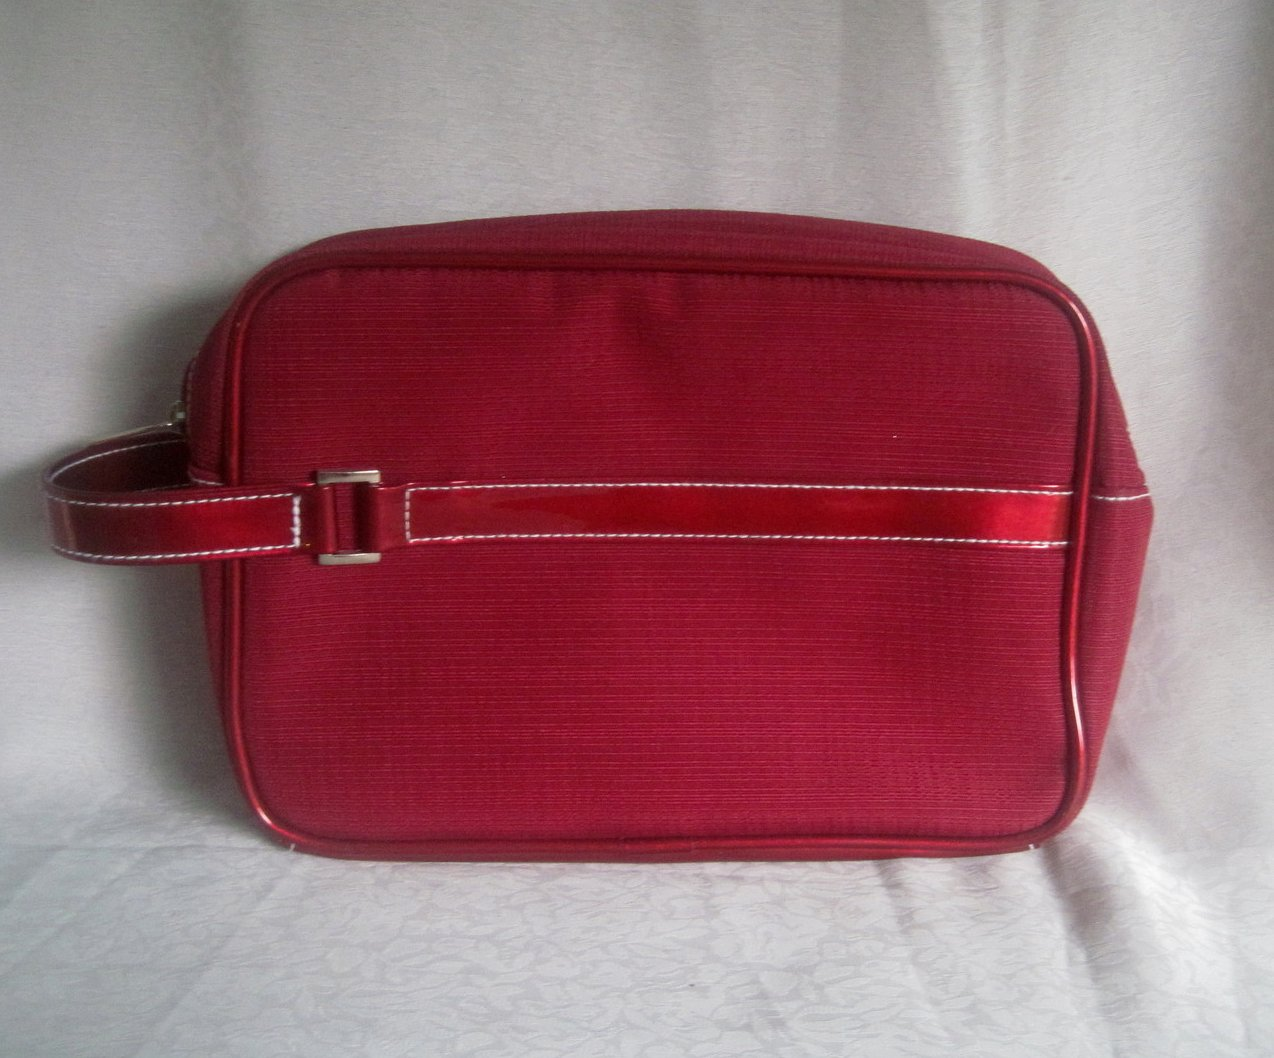 Image 3 of Estee Lauder Red Cosmetic Makeup Bag